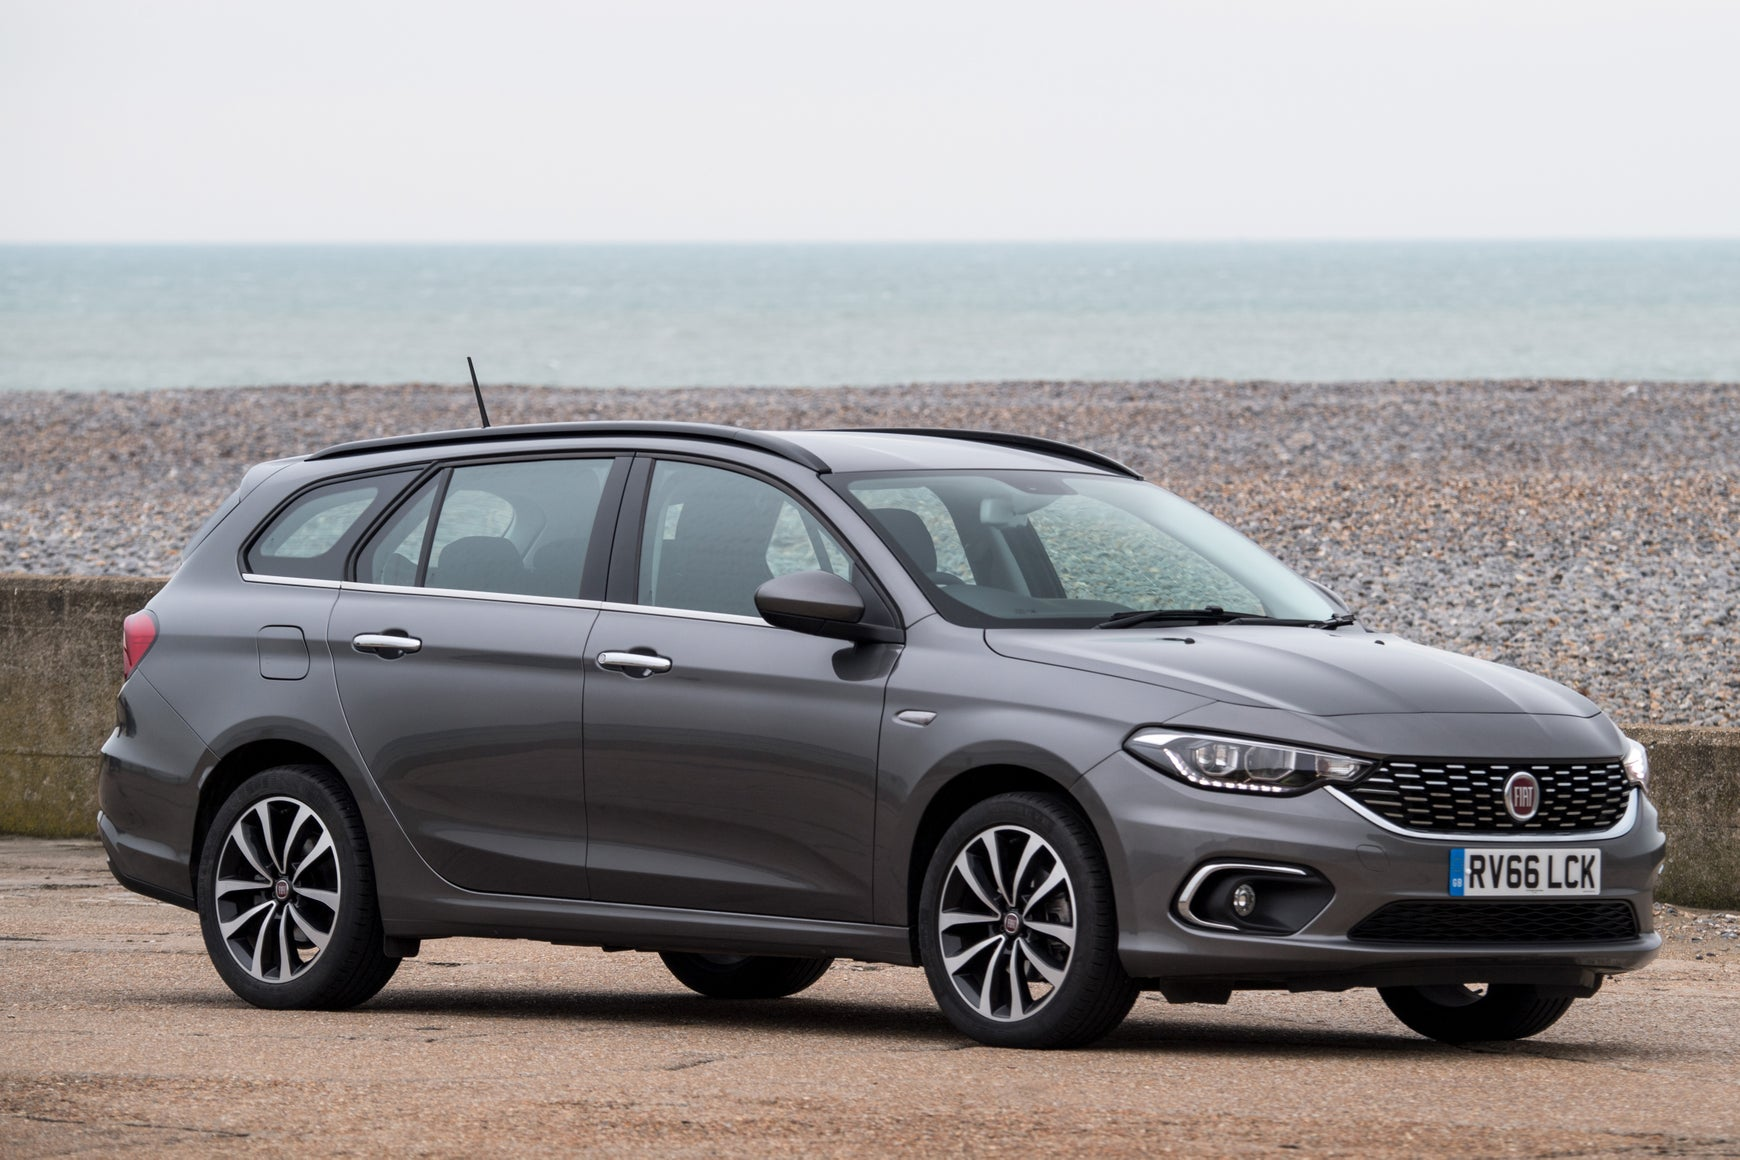 Fiat Tipo SW front